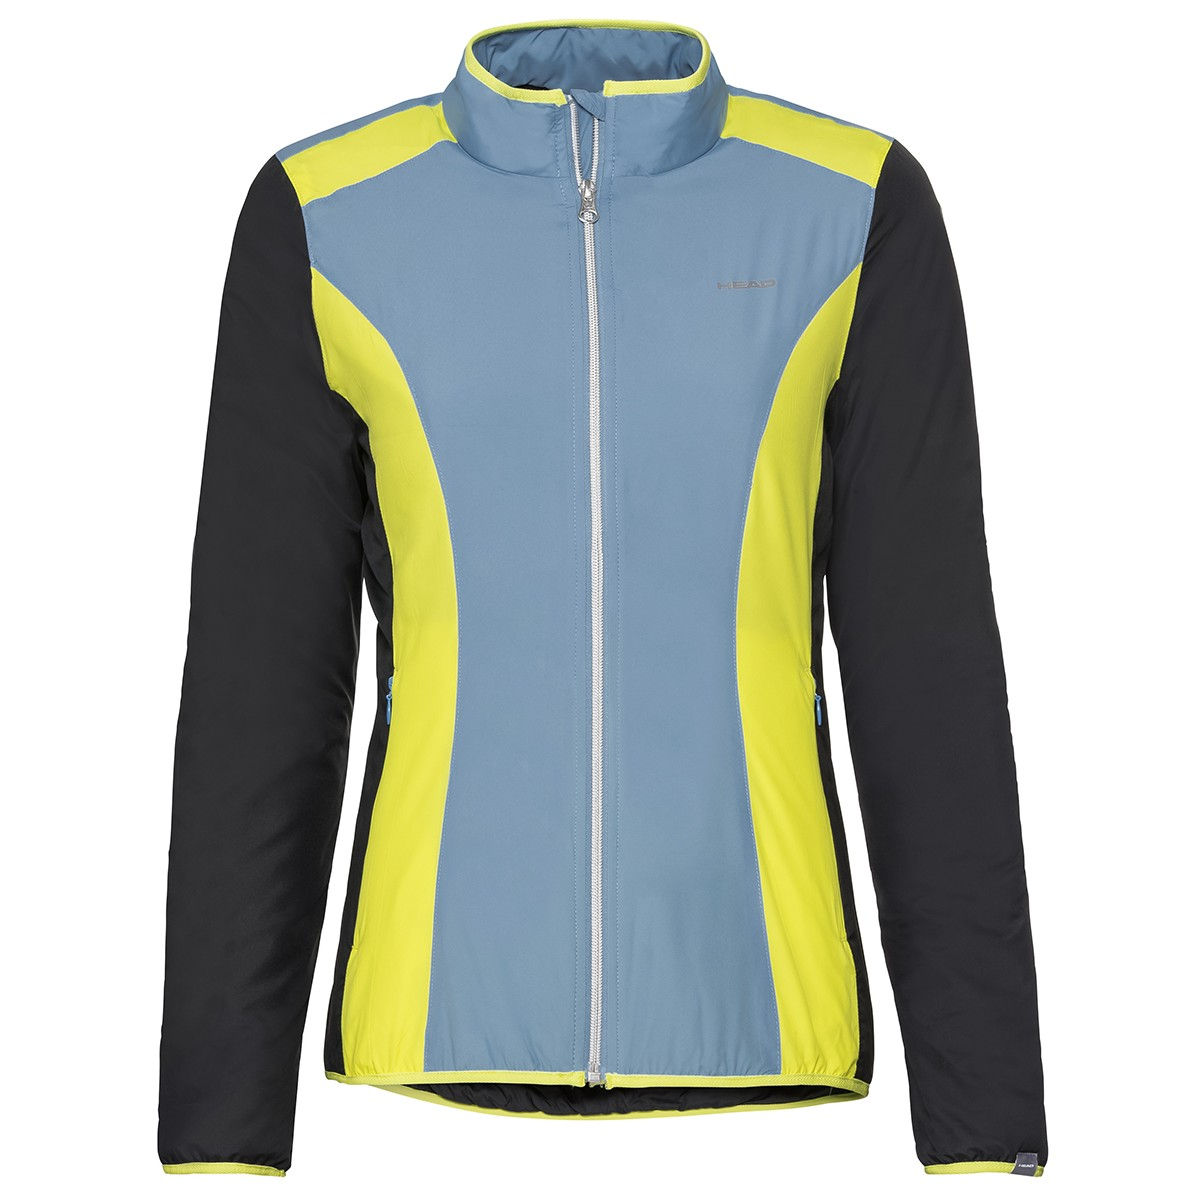 WOMEN'S HEAD VISION ENDURANCE JACKET